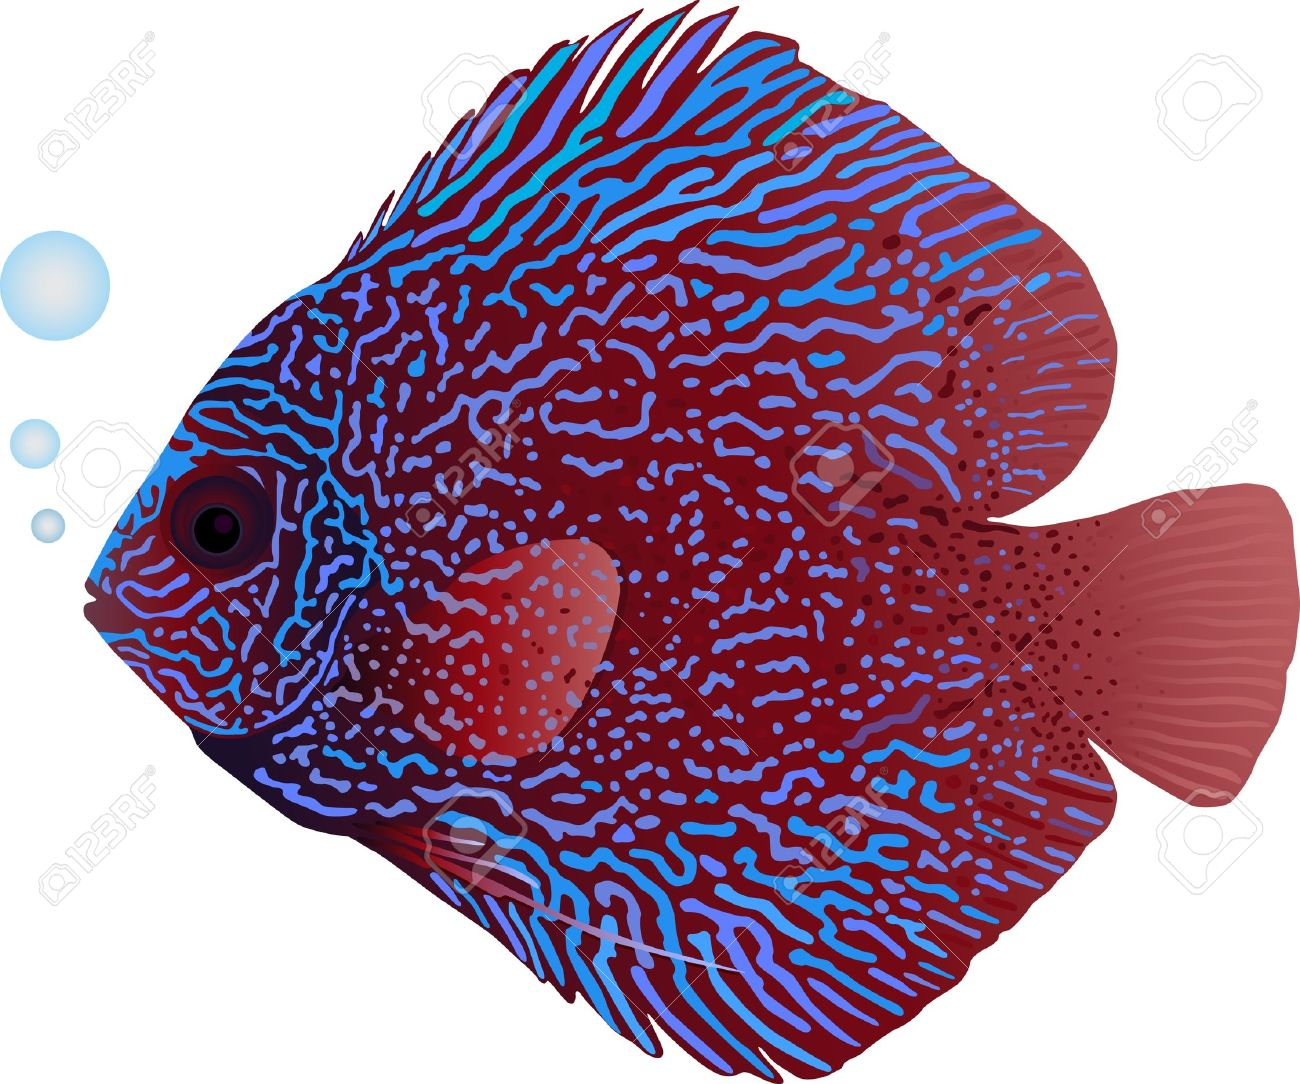 A Detailed Illustration Of A Snakeskin Discus Fish Royalty Free.